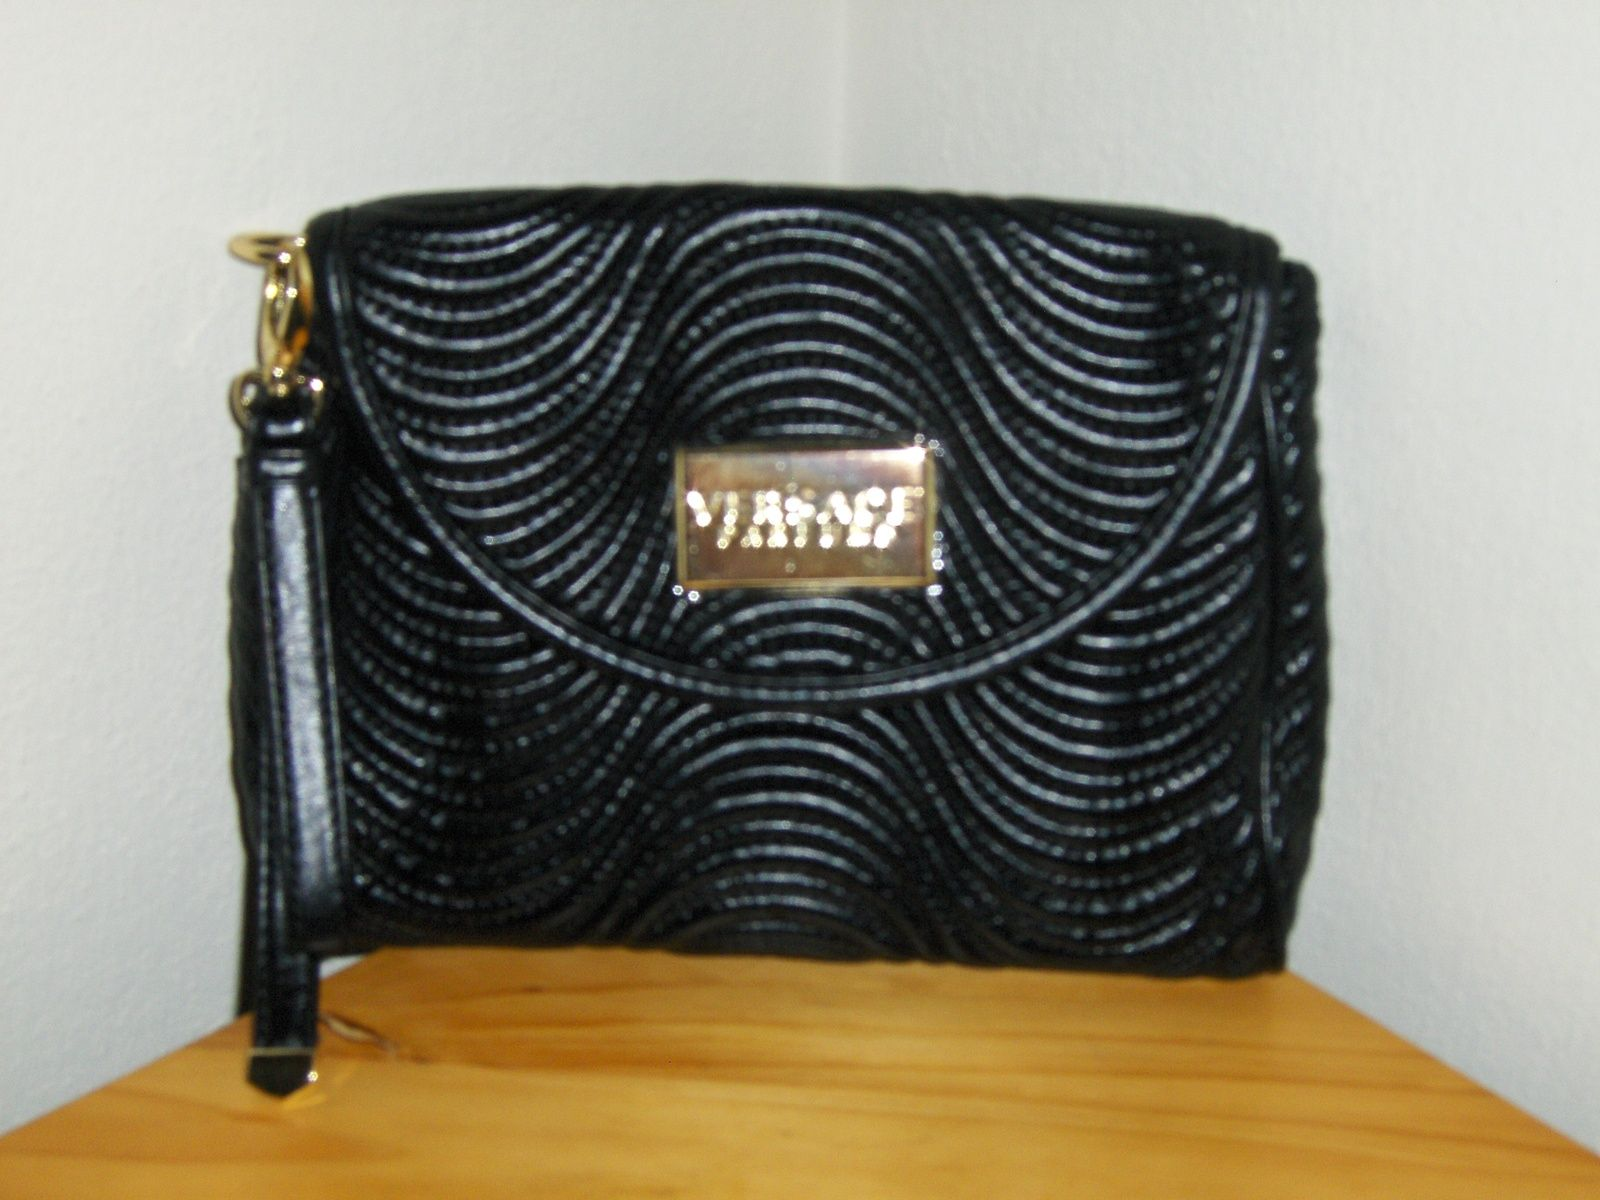 6158ec8d38 Versace Parfums Black Beauty Cosmetic Bag Clutch Bag Purse Wristlet Makeup  Tote